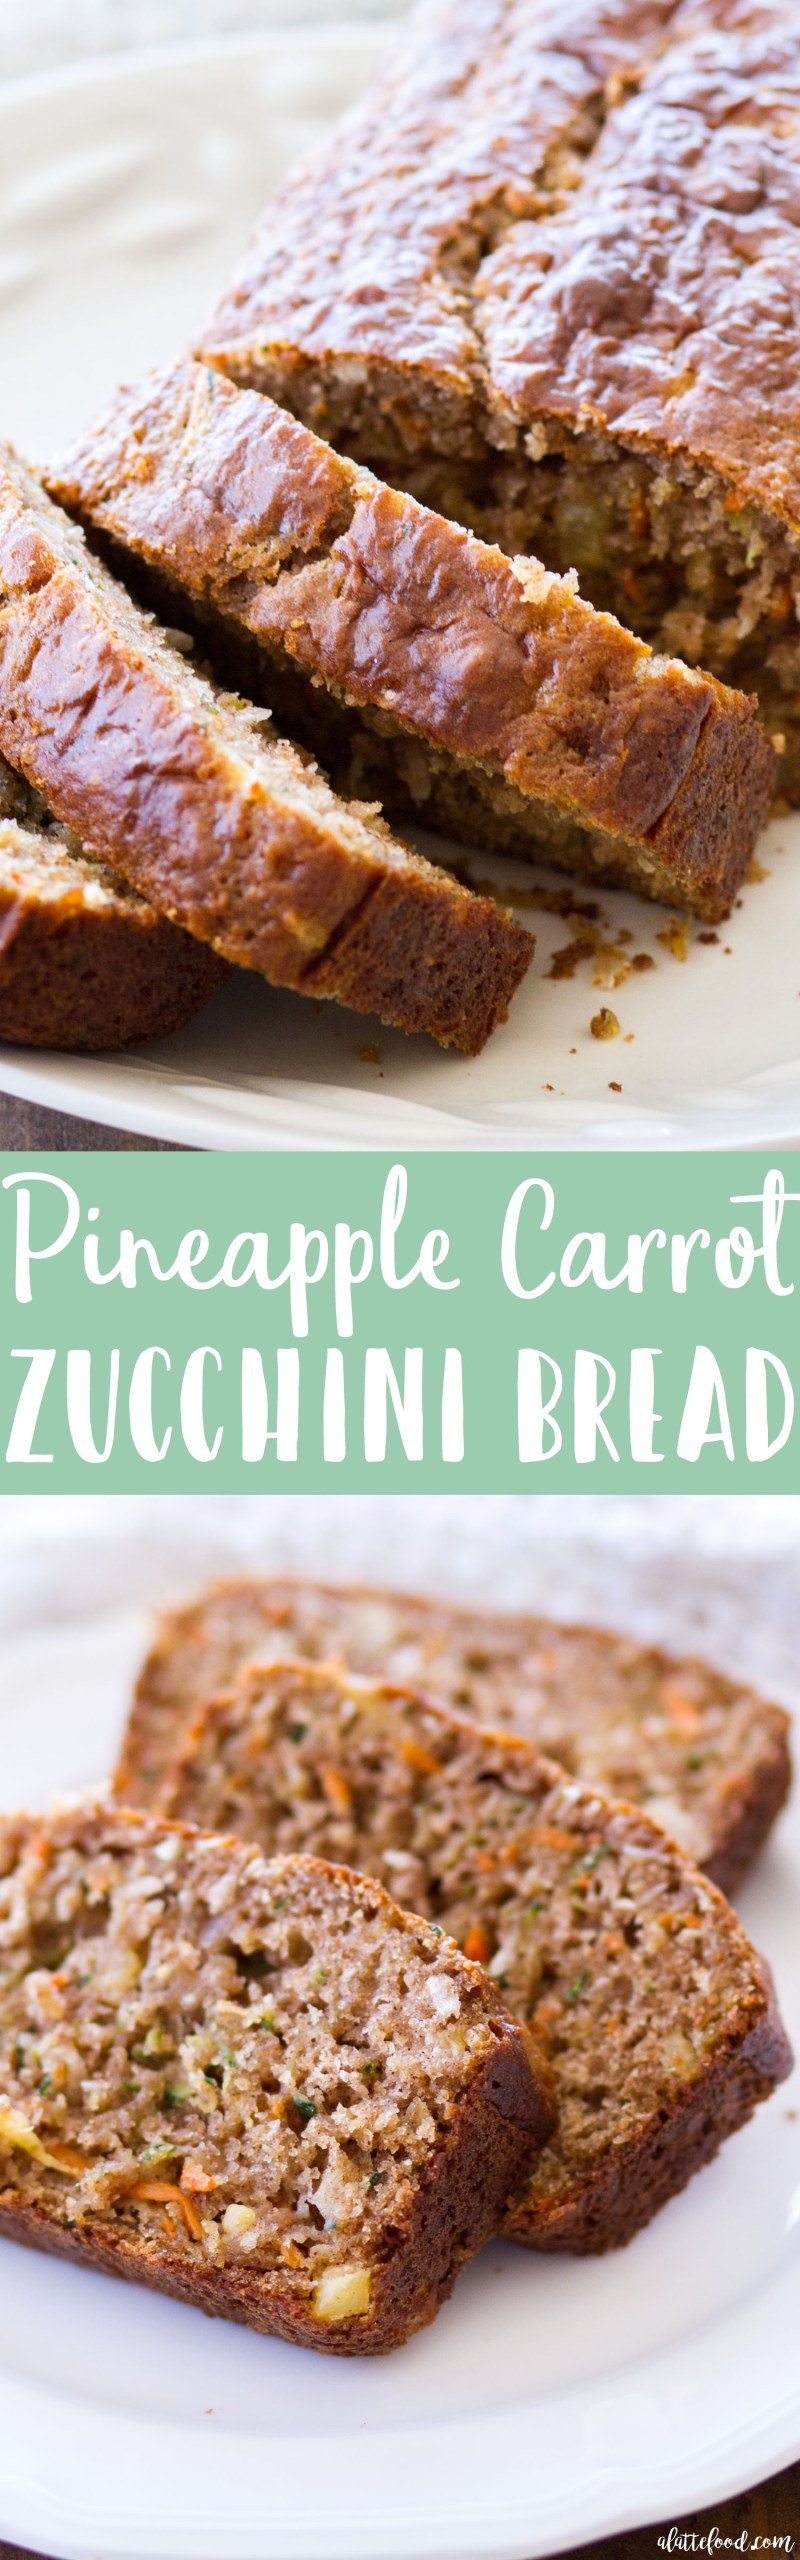 This homemade zucchini bread recipe is filled with shredded carrots, sweet pineapple, and coconut! Pineapple Carrot Zucchini Bread is spiced with ginger and cinnamon, and the perfectquick bread for breakfast, brunch, or an after school snack! Plus, a video below! homemade zucchini bread, what to do with zucchini